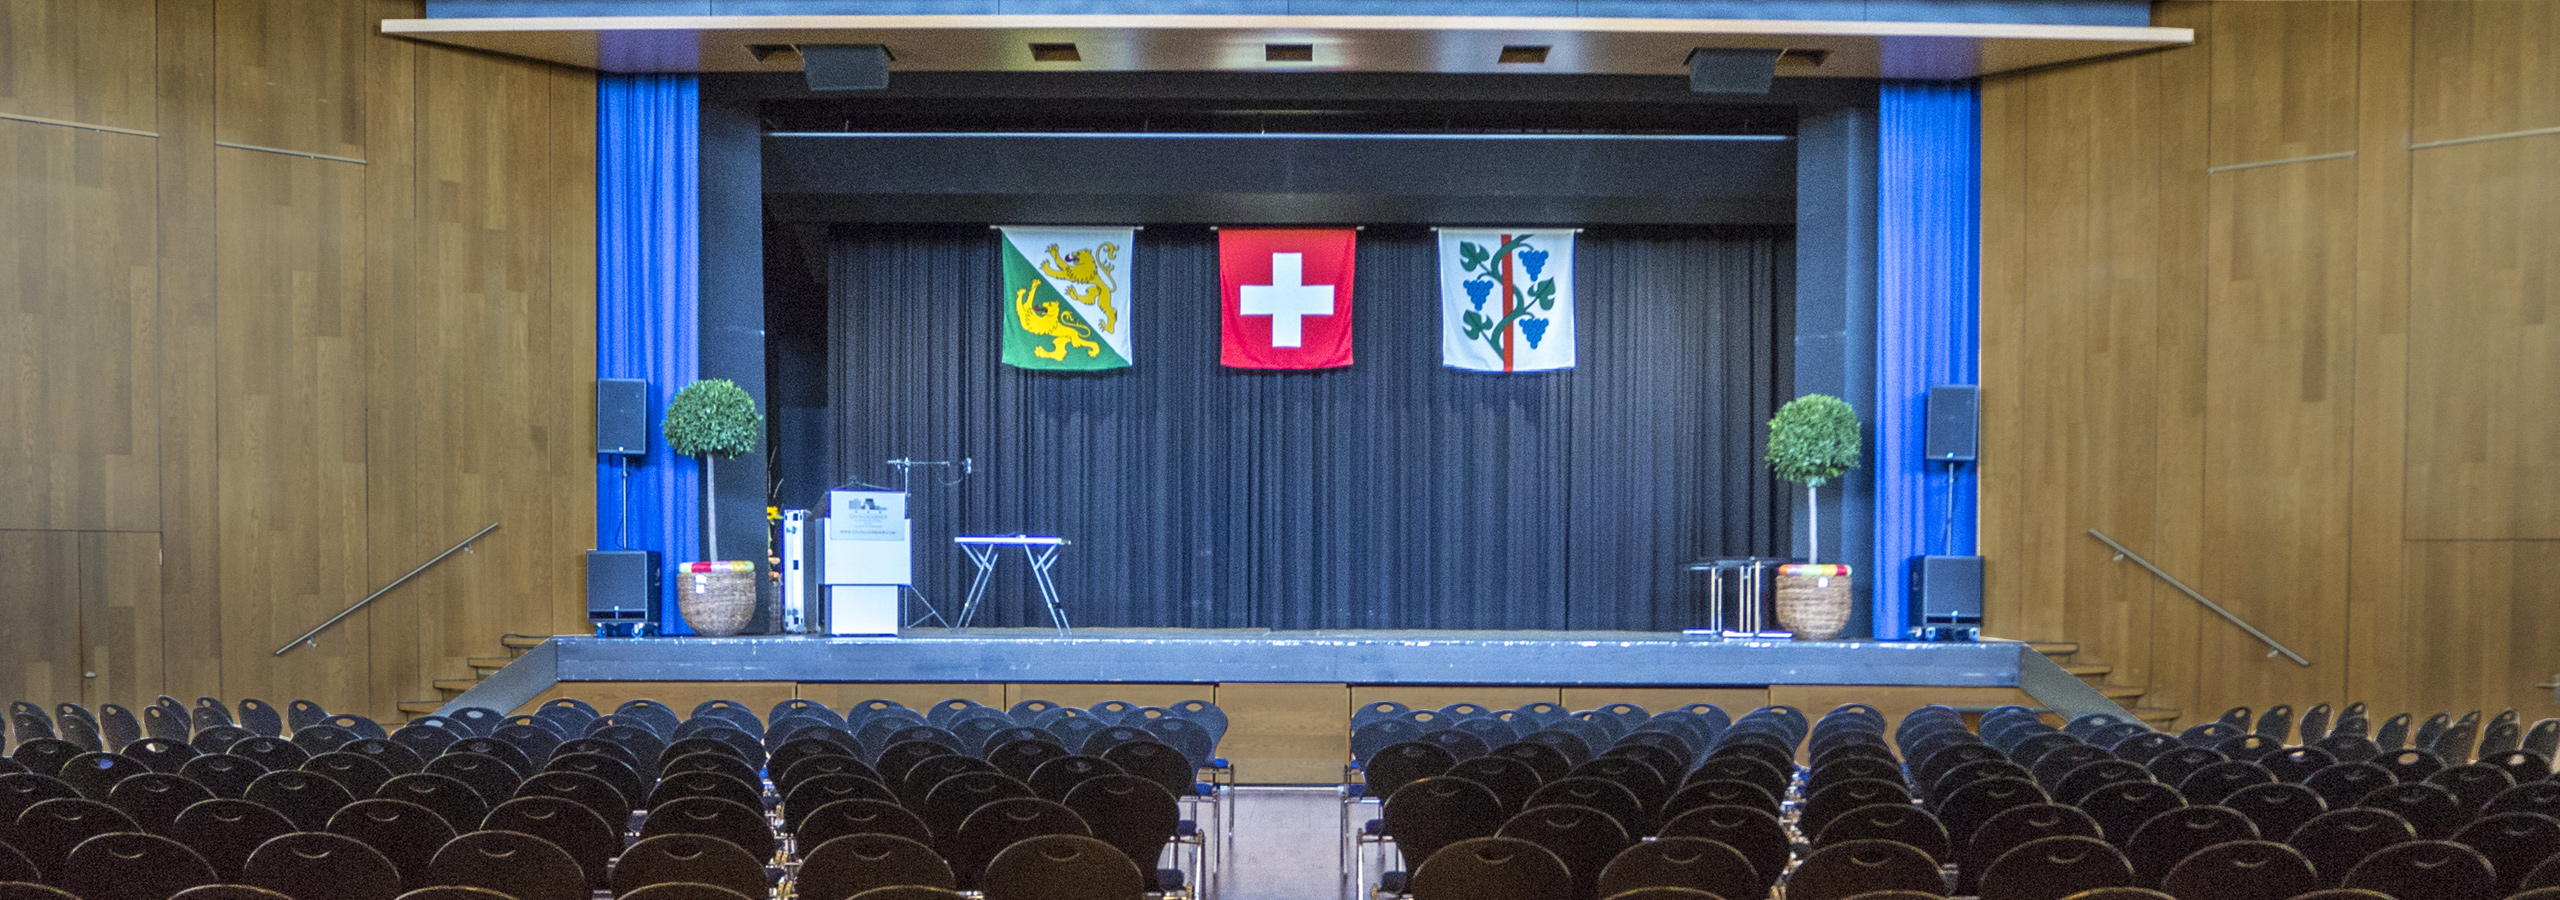 Congress- and Seminarrooms at Thurgauerhof